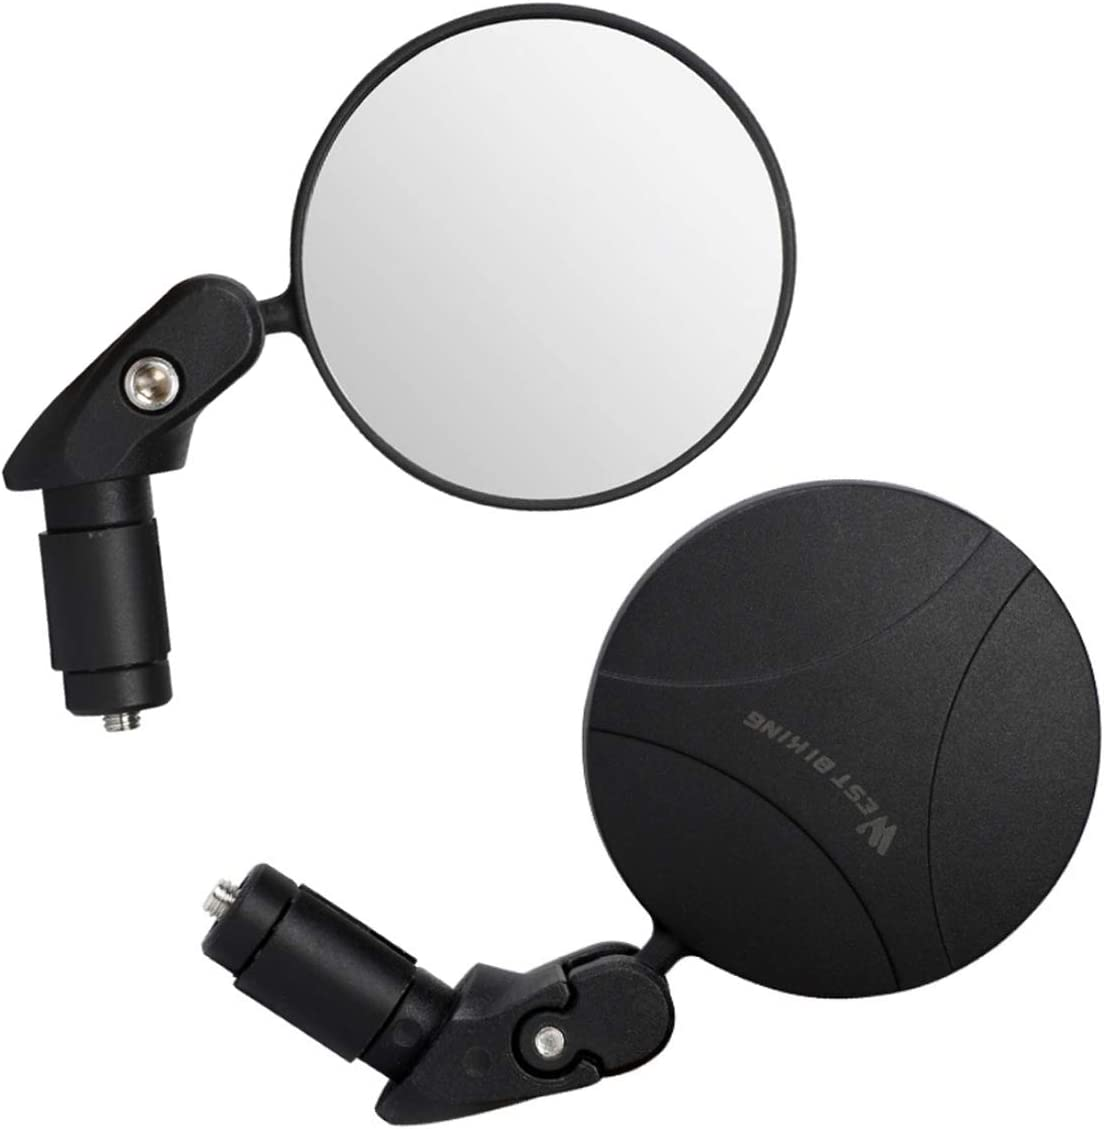 1 PC With Wide Angle Lens Safety Rearview Mirror HKBTCH Bar End Bike Mirrors,360/°Adjustable Rotatable Handlebar Convex Mirror for Mountain Road Bicycle Riding Cycling Accessories